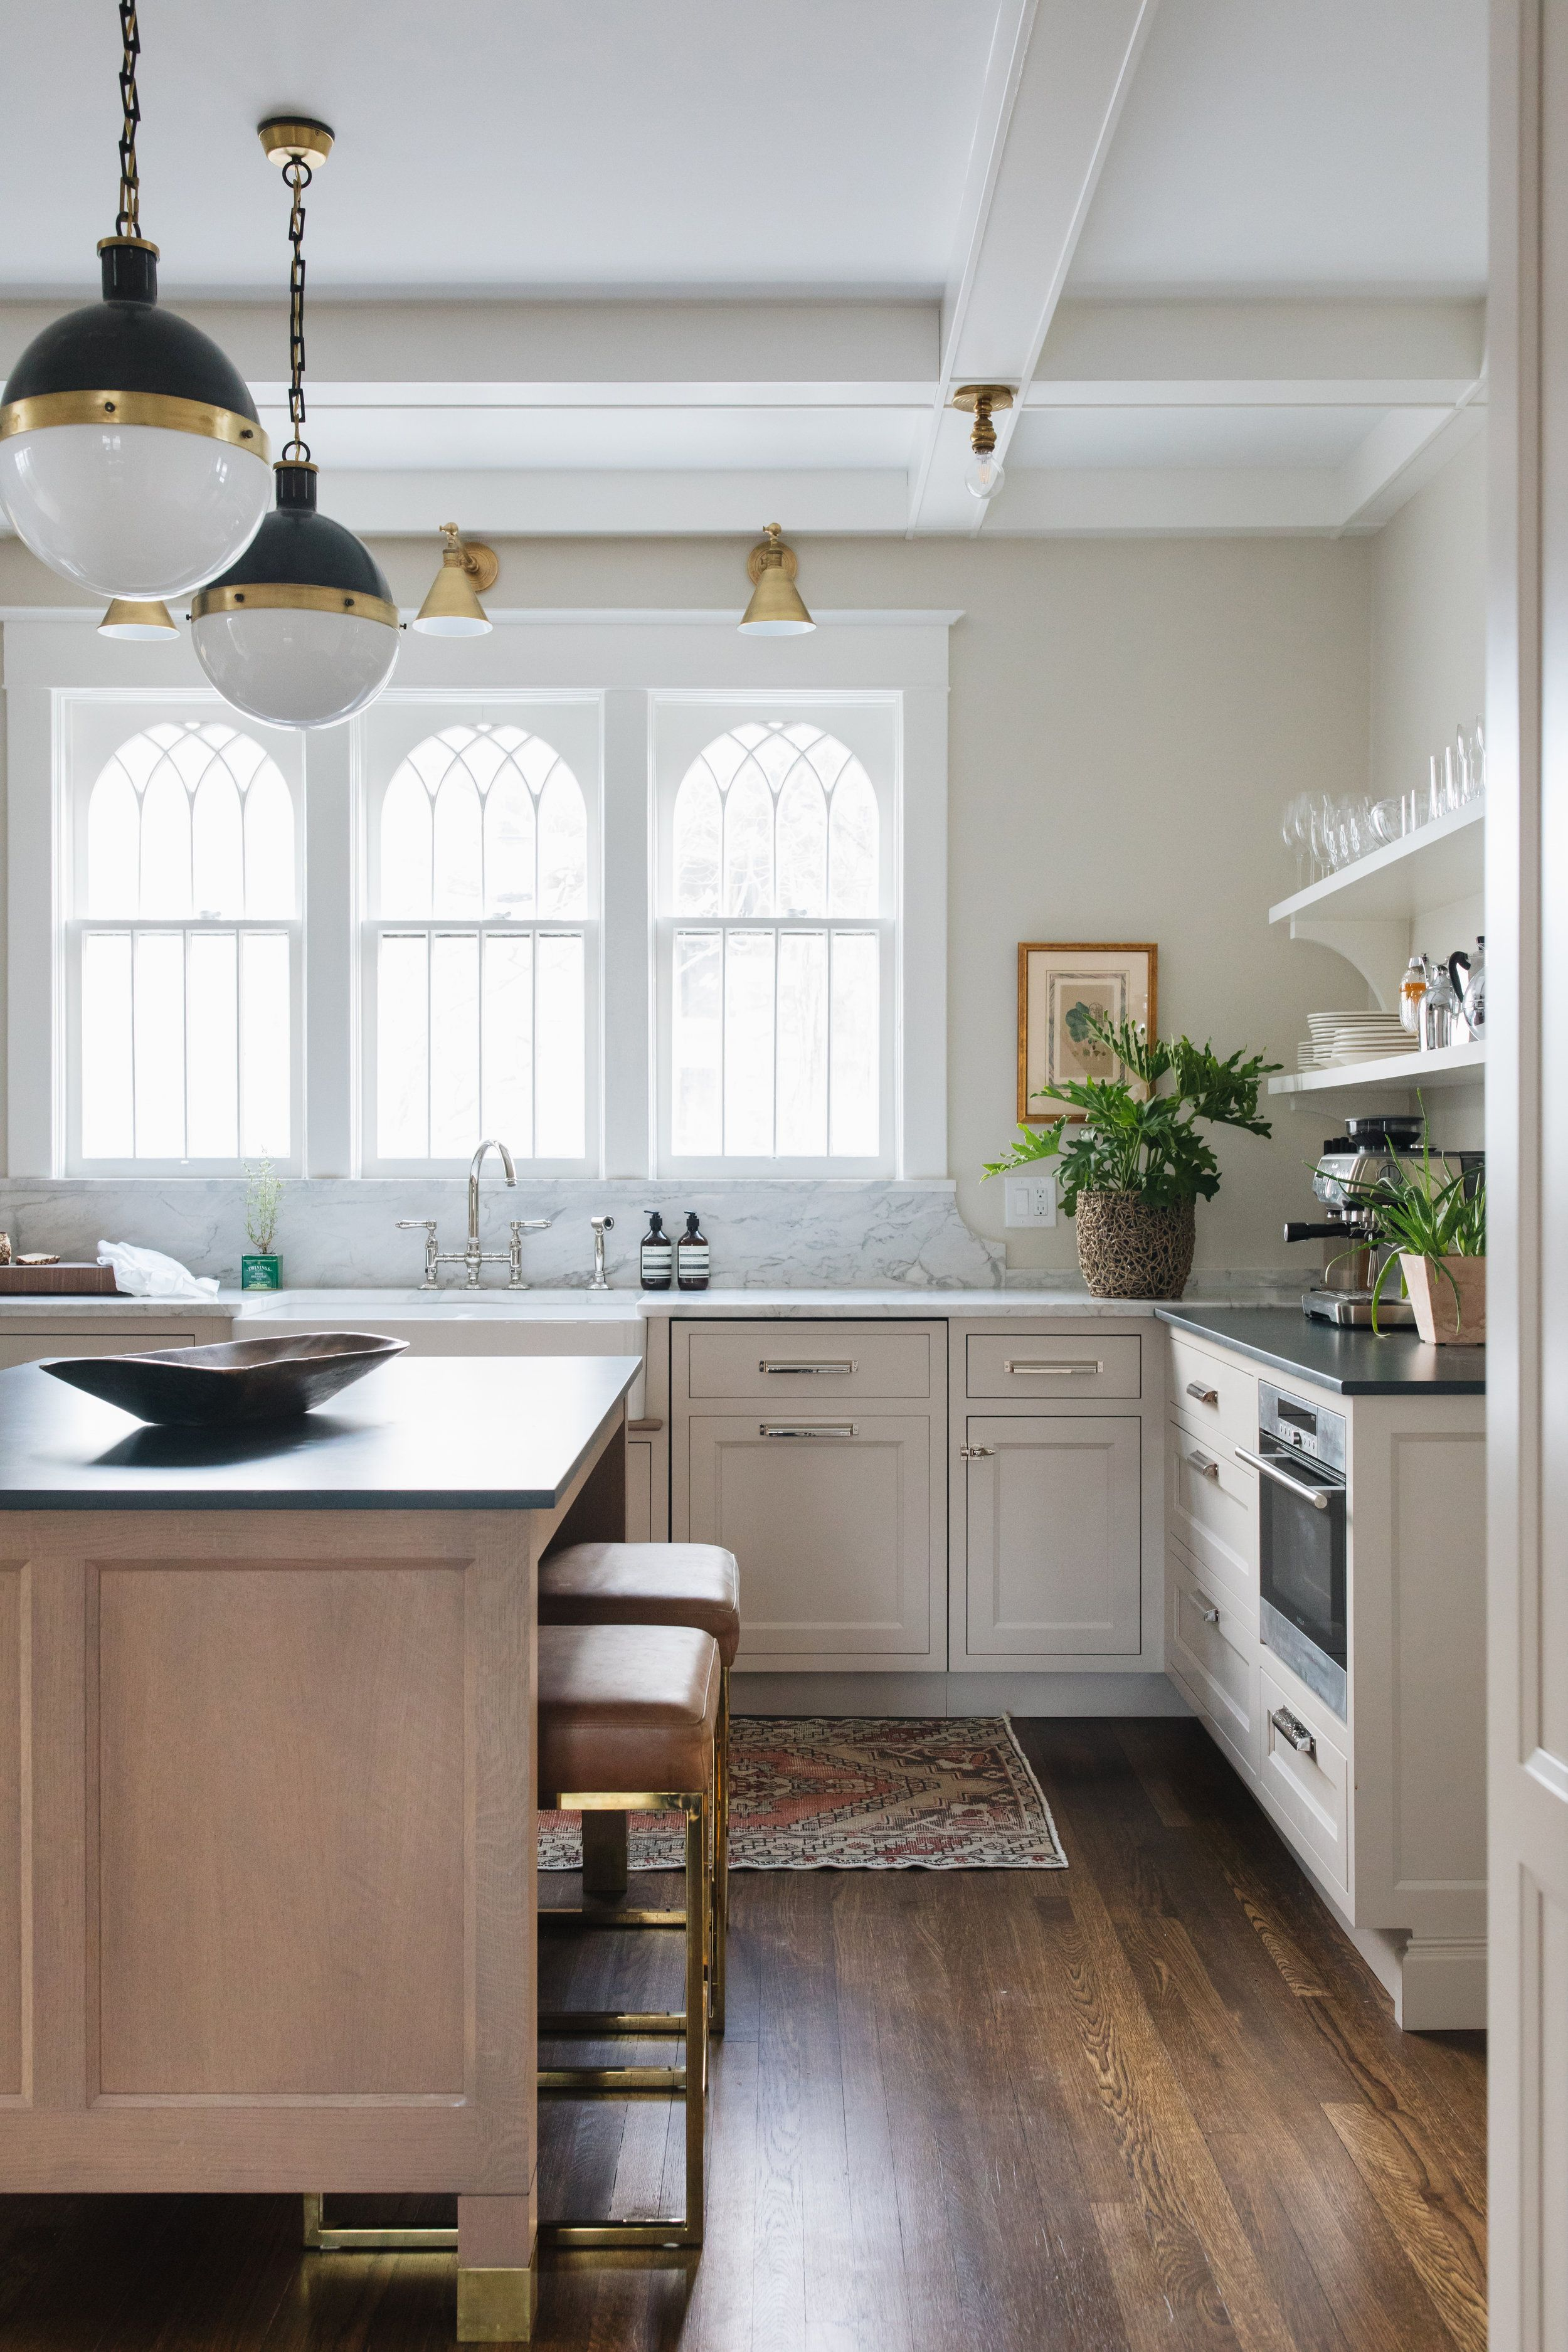 arched windows over the taupe cabinets with